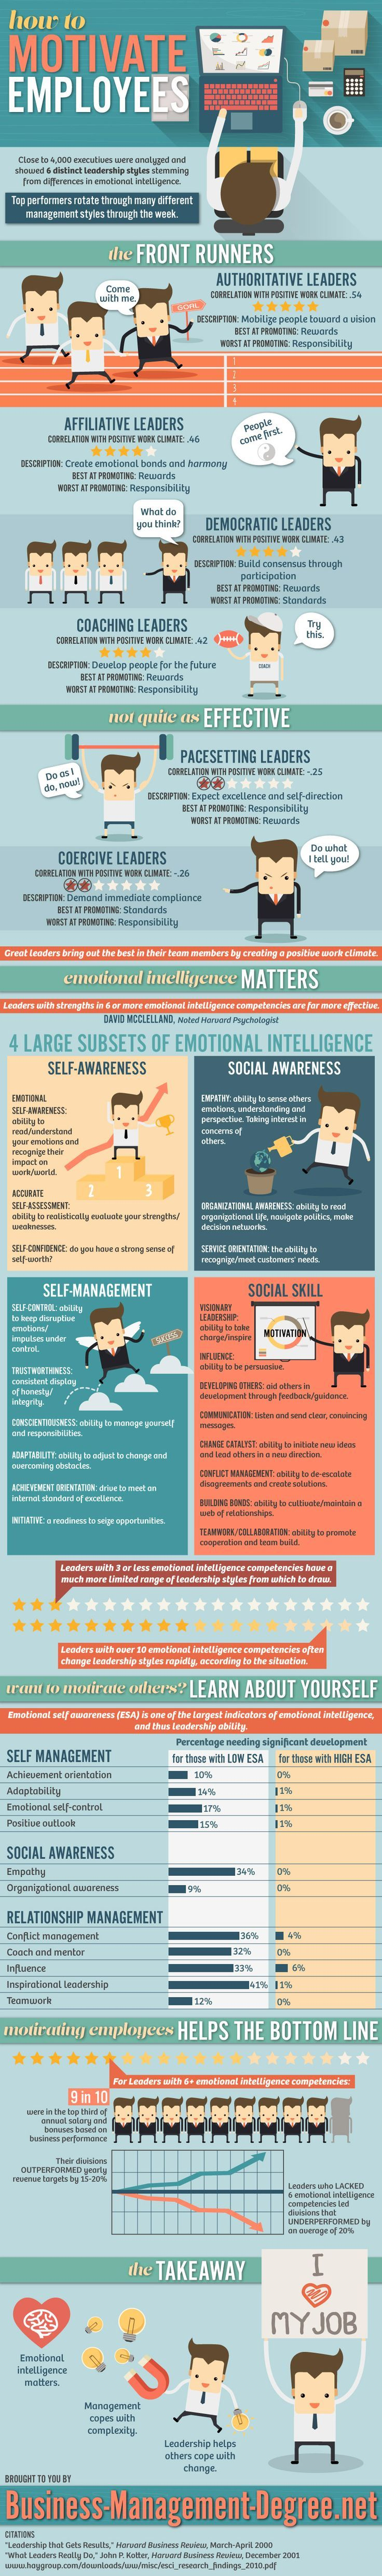 How to Become an Inspirational Leader (Infographic) #leaders #leadership #motivation: